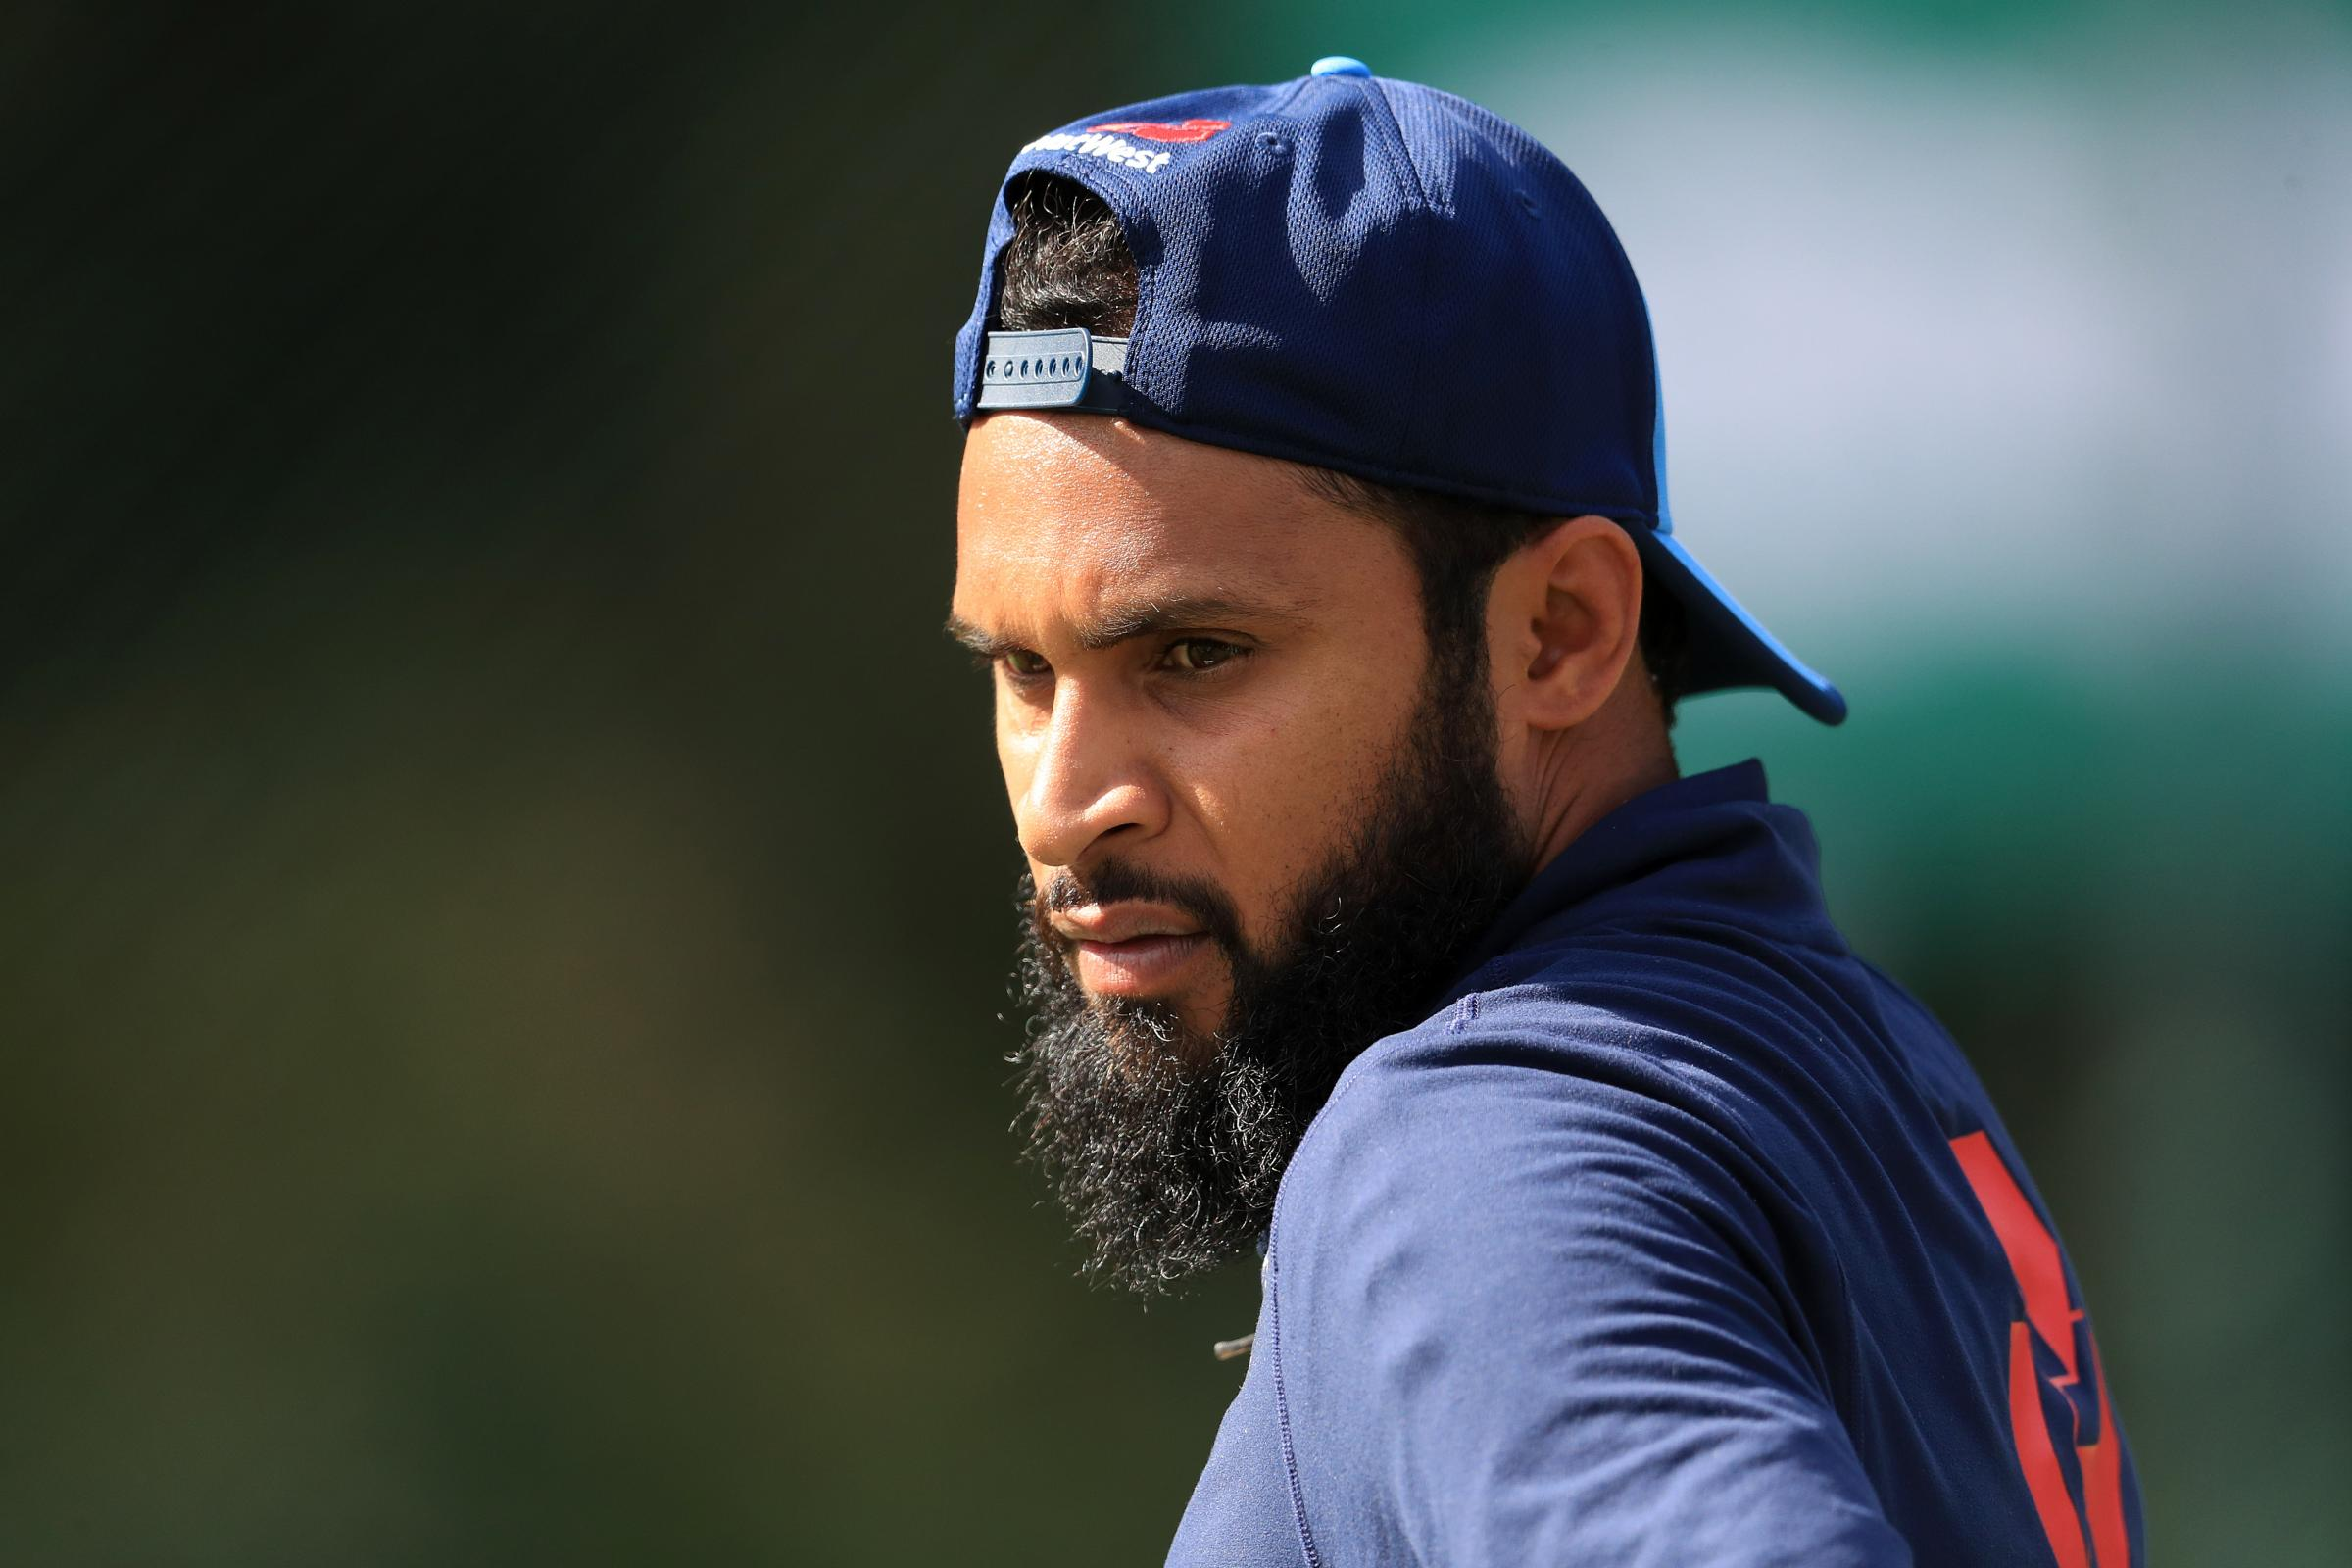 Adil Rashid hopes to return to white-ball form after a difficult Test tour of the West Indies